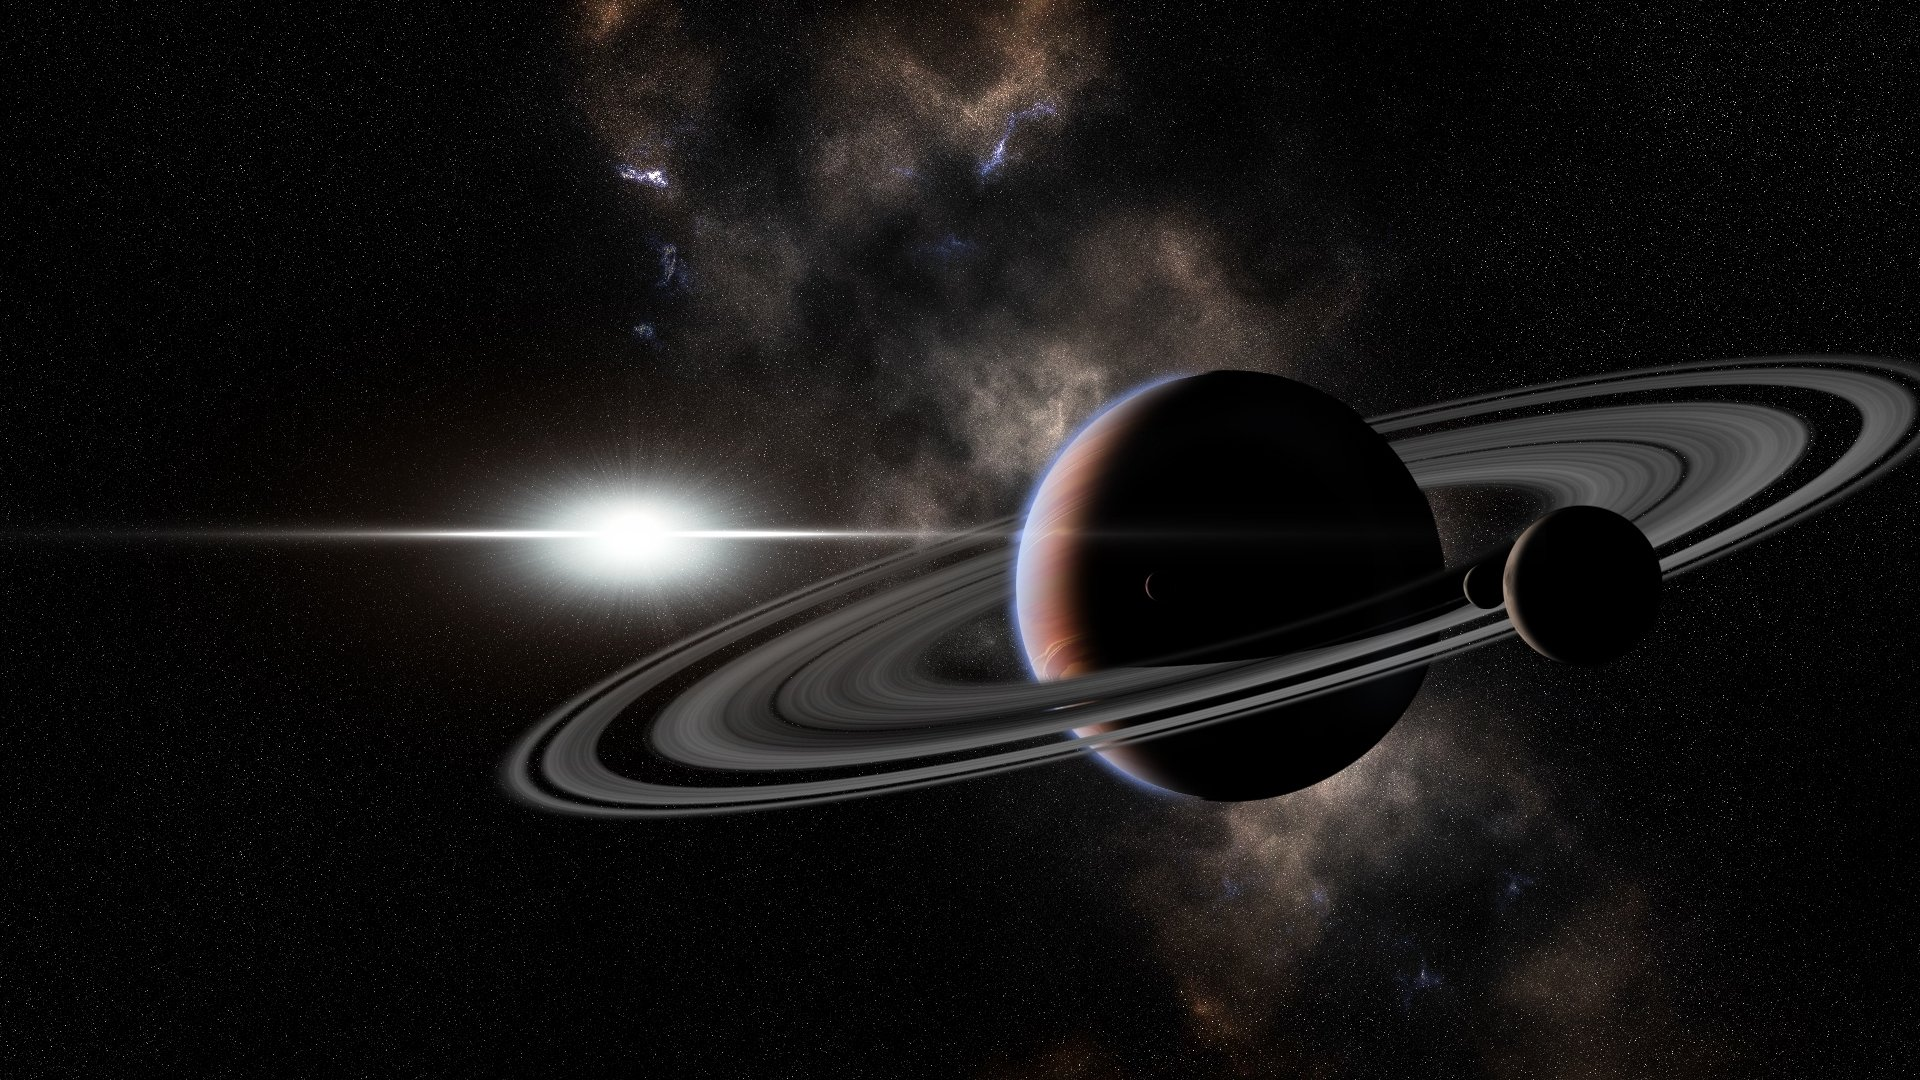 Awesome Planetary Ring free background ID:256483 for full hd 1080p computer